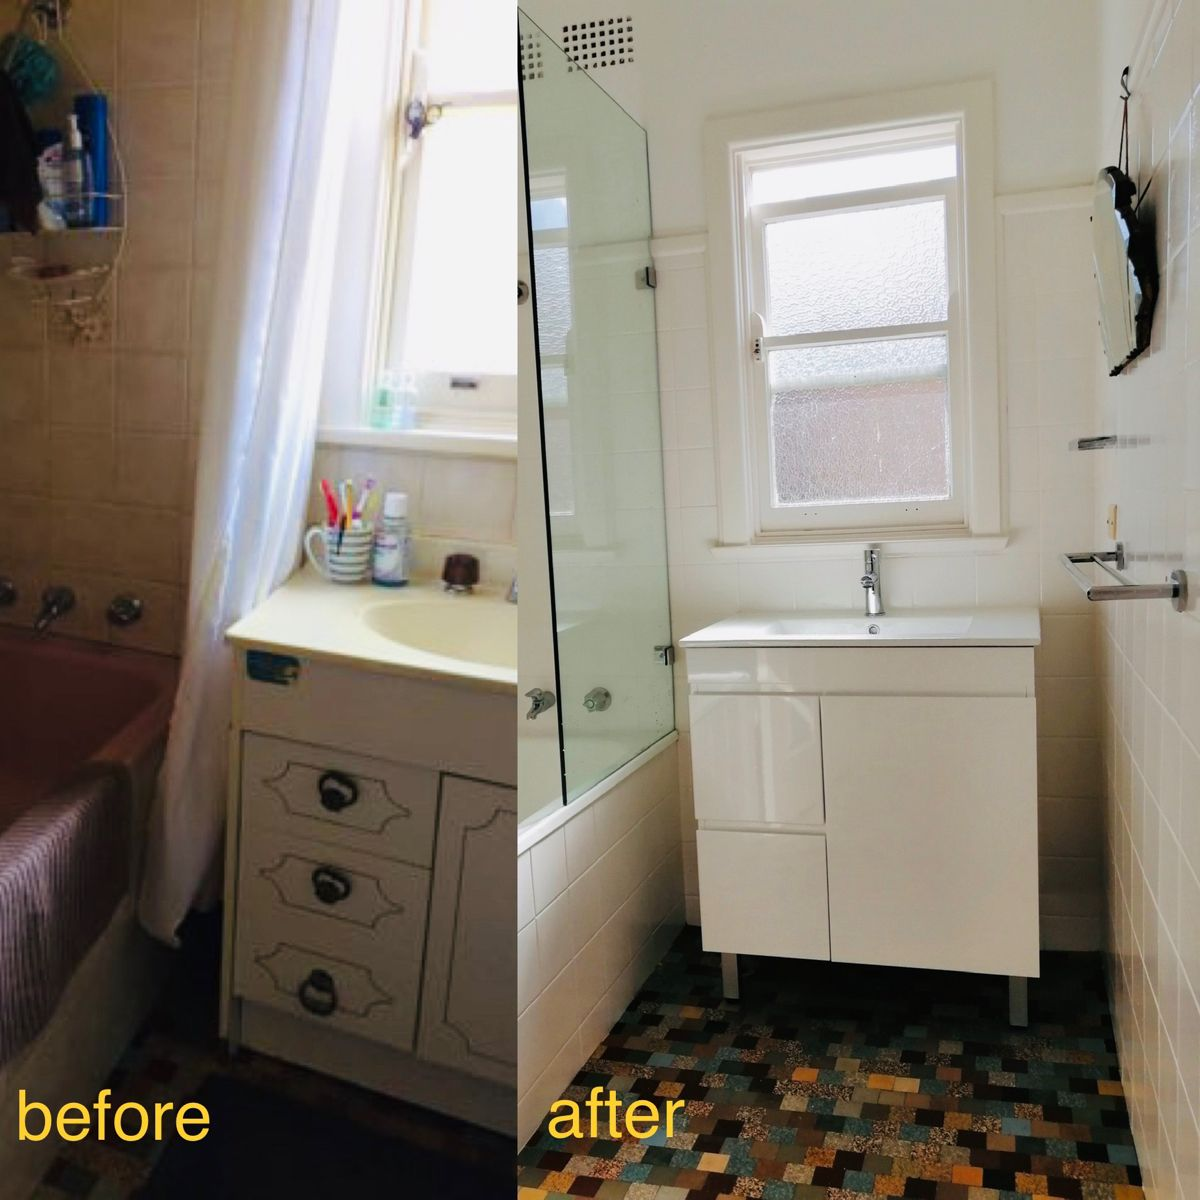 Before and after | Renovation company, Bathroom renovation ...